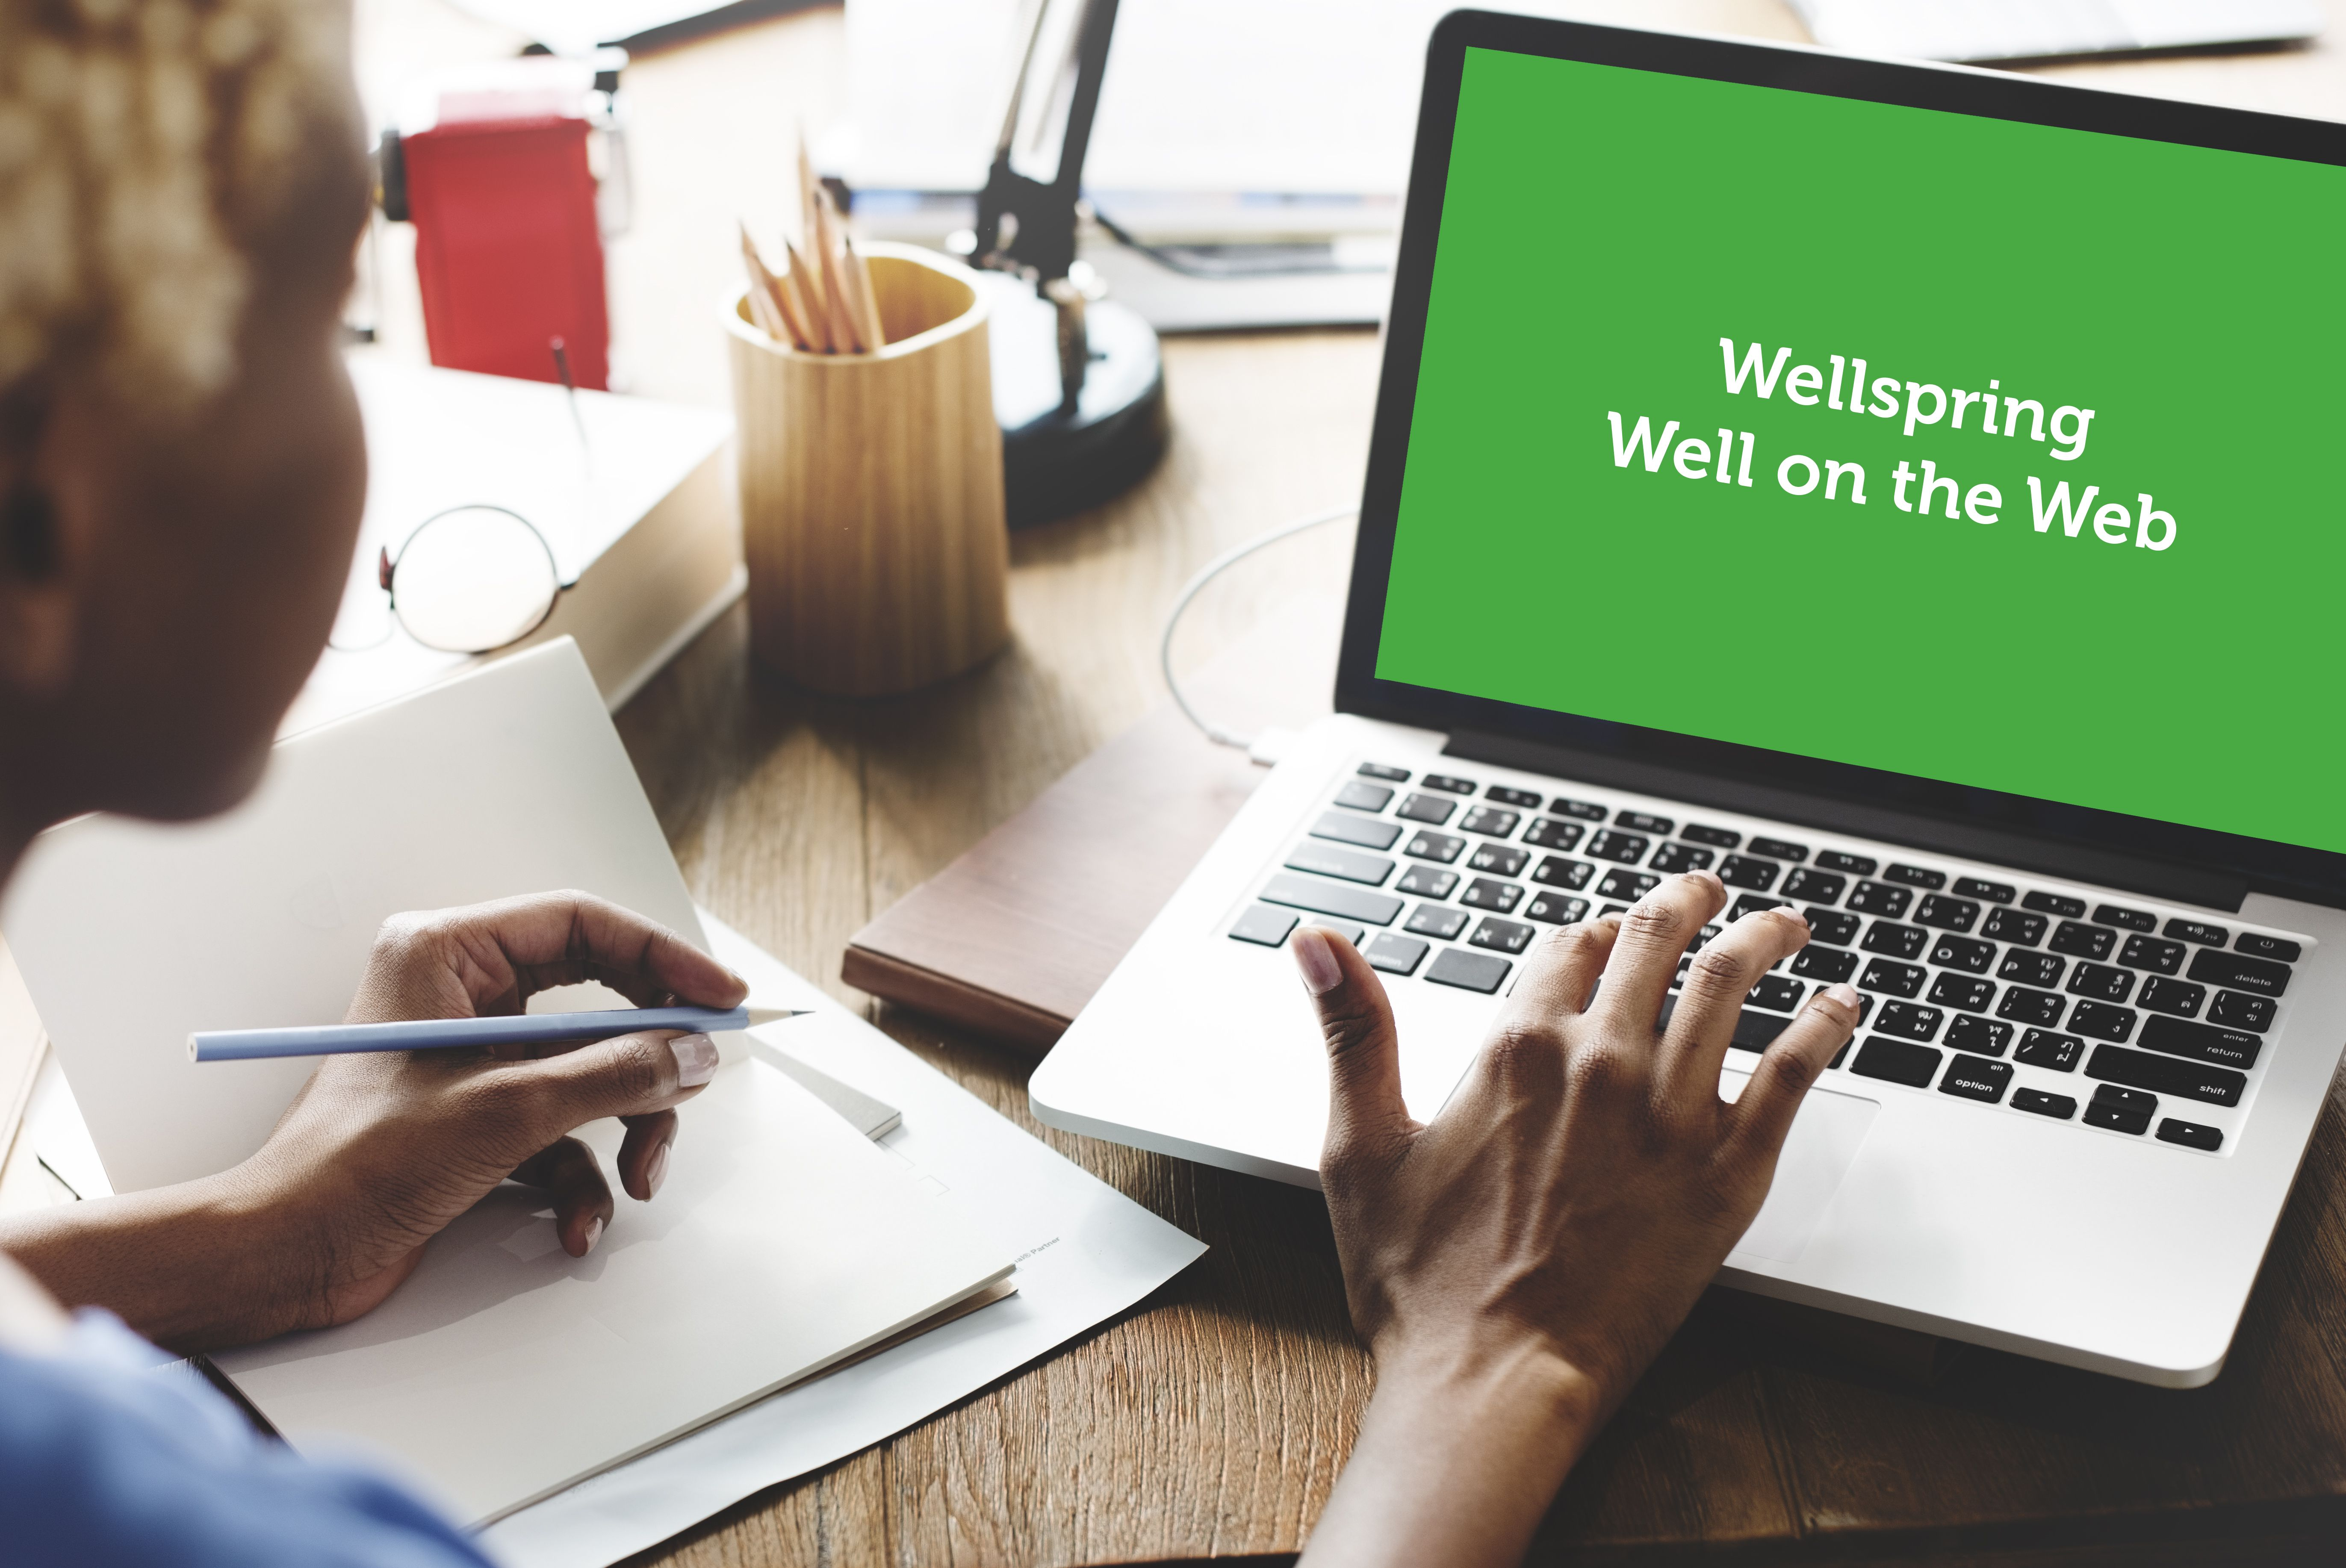 Well on the Web – Wellspring's Online Centre